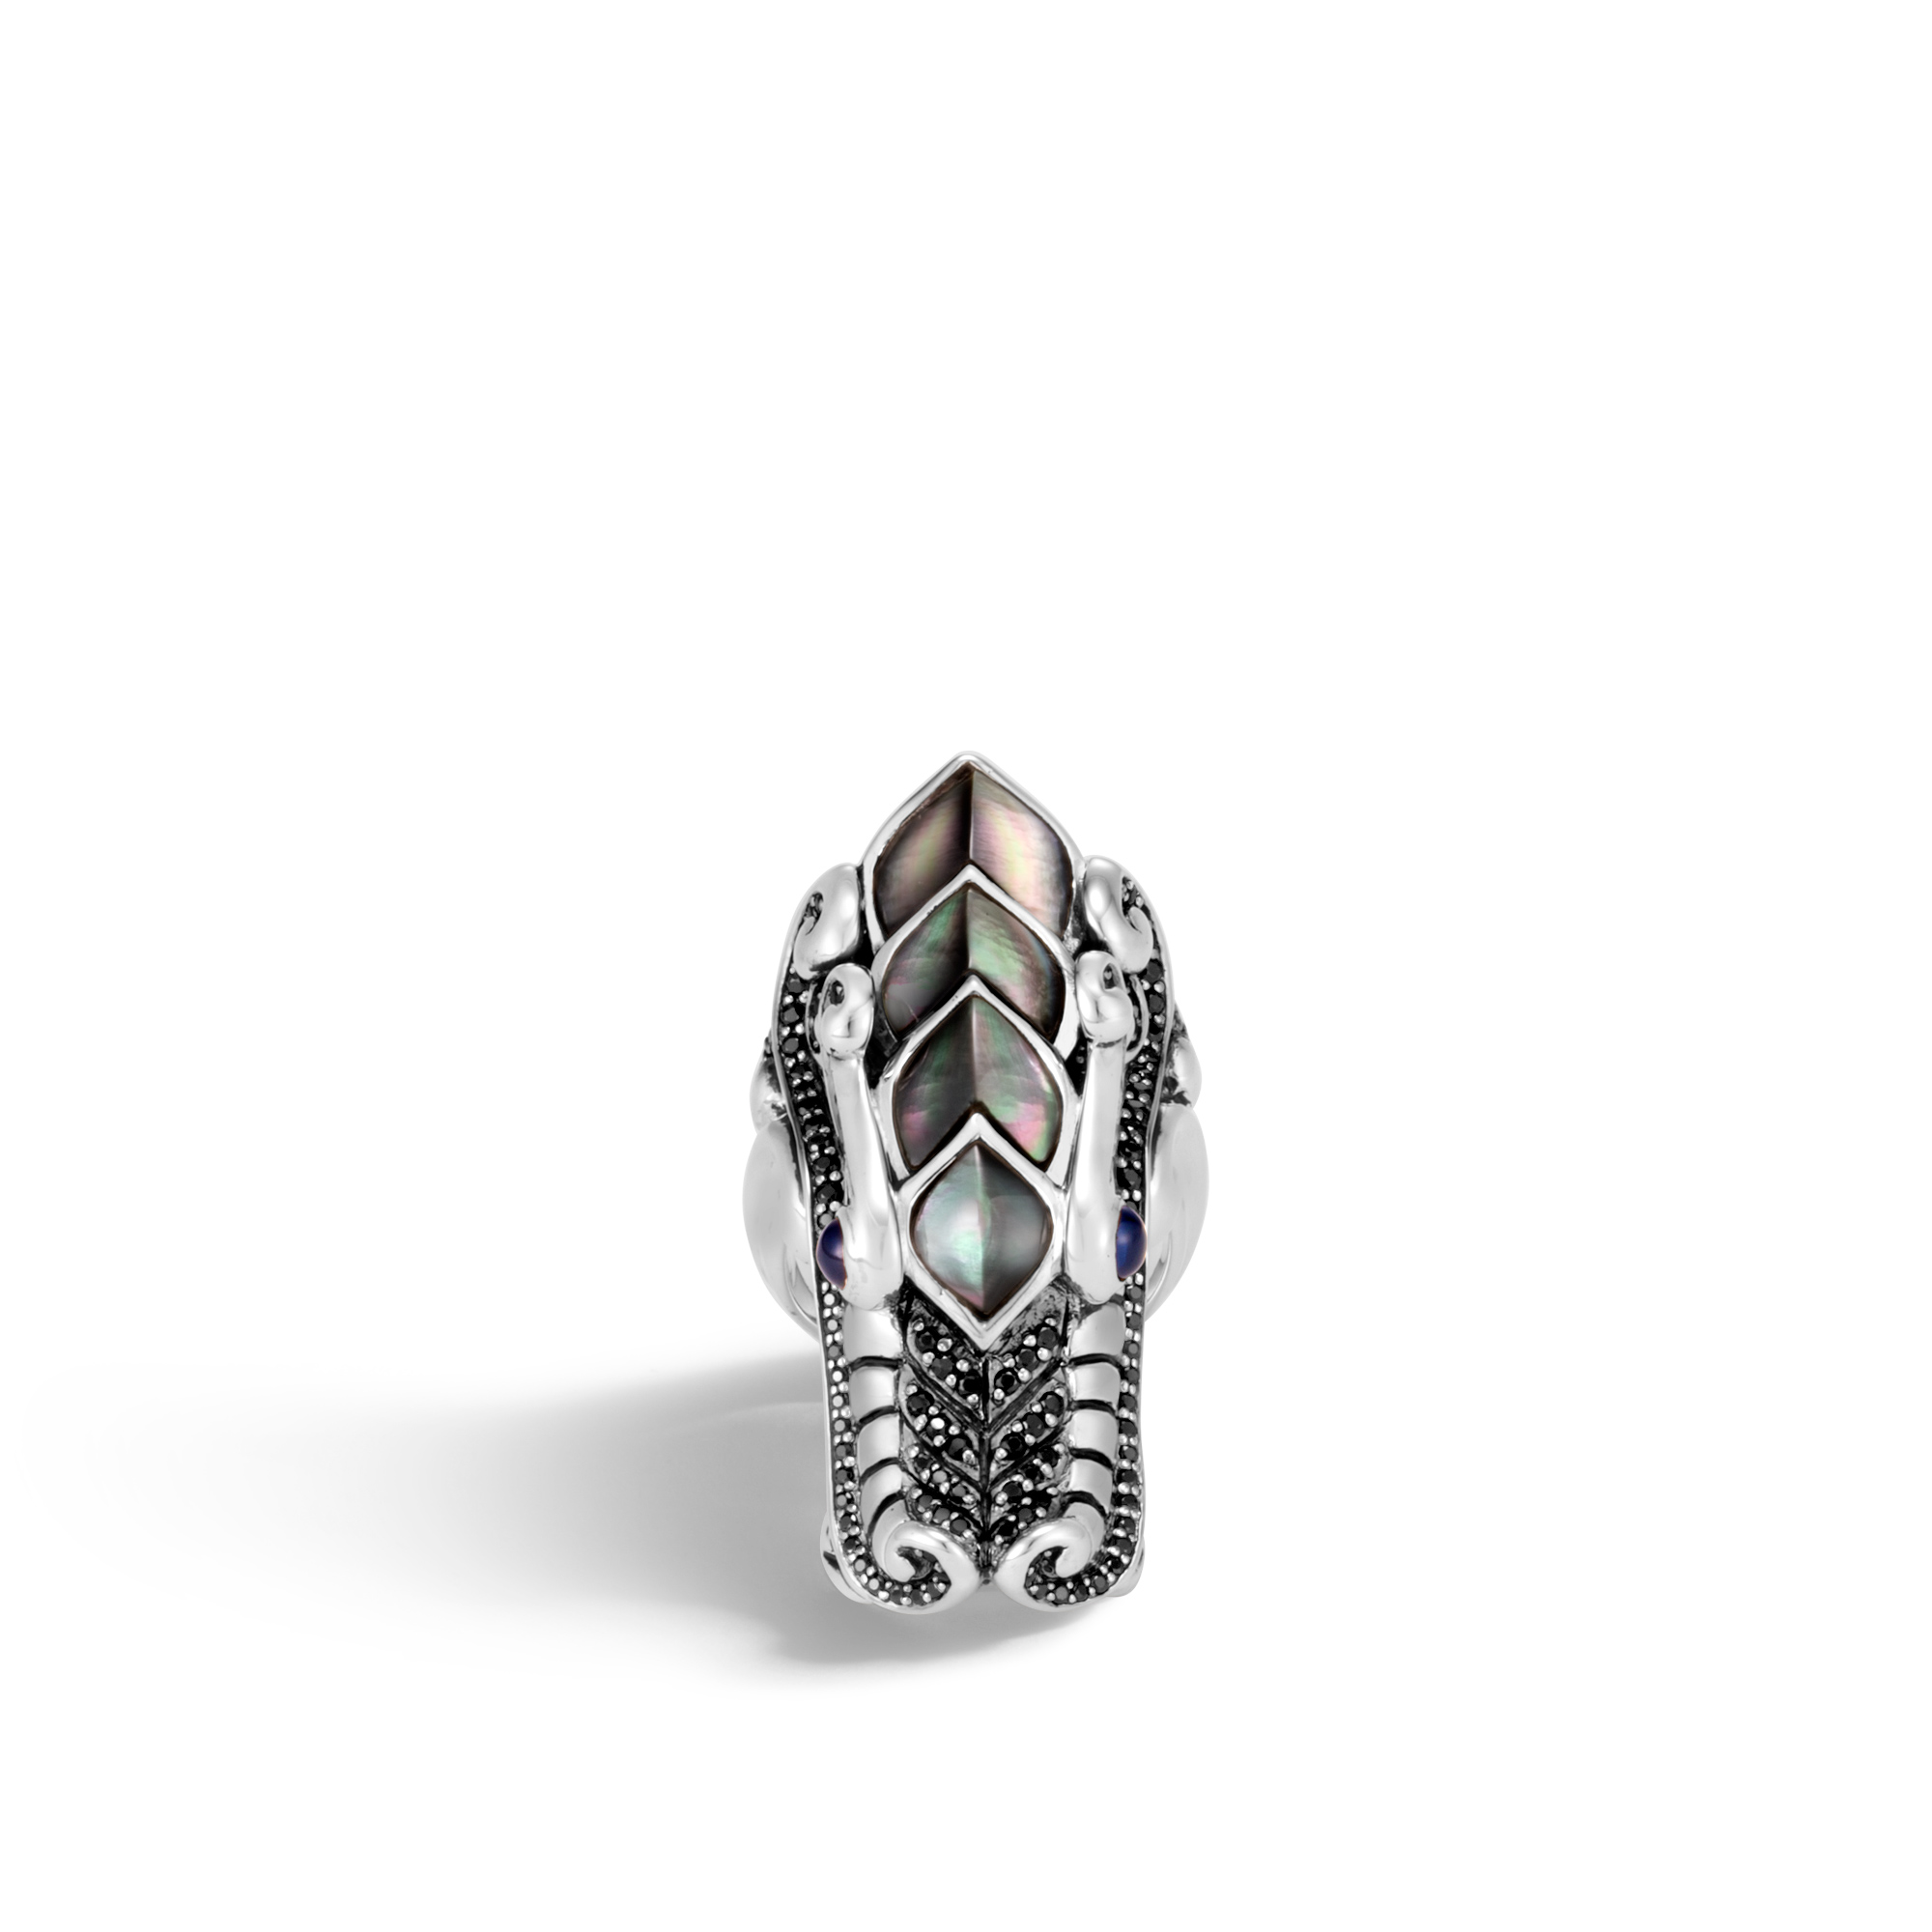 Legends Naga Ring in Silver with Gemstone, Blue Sapphire, large